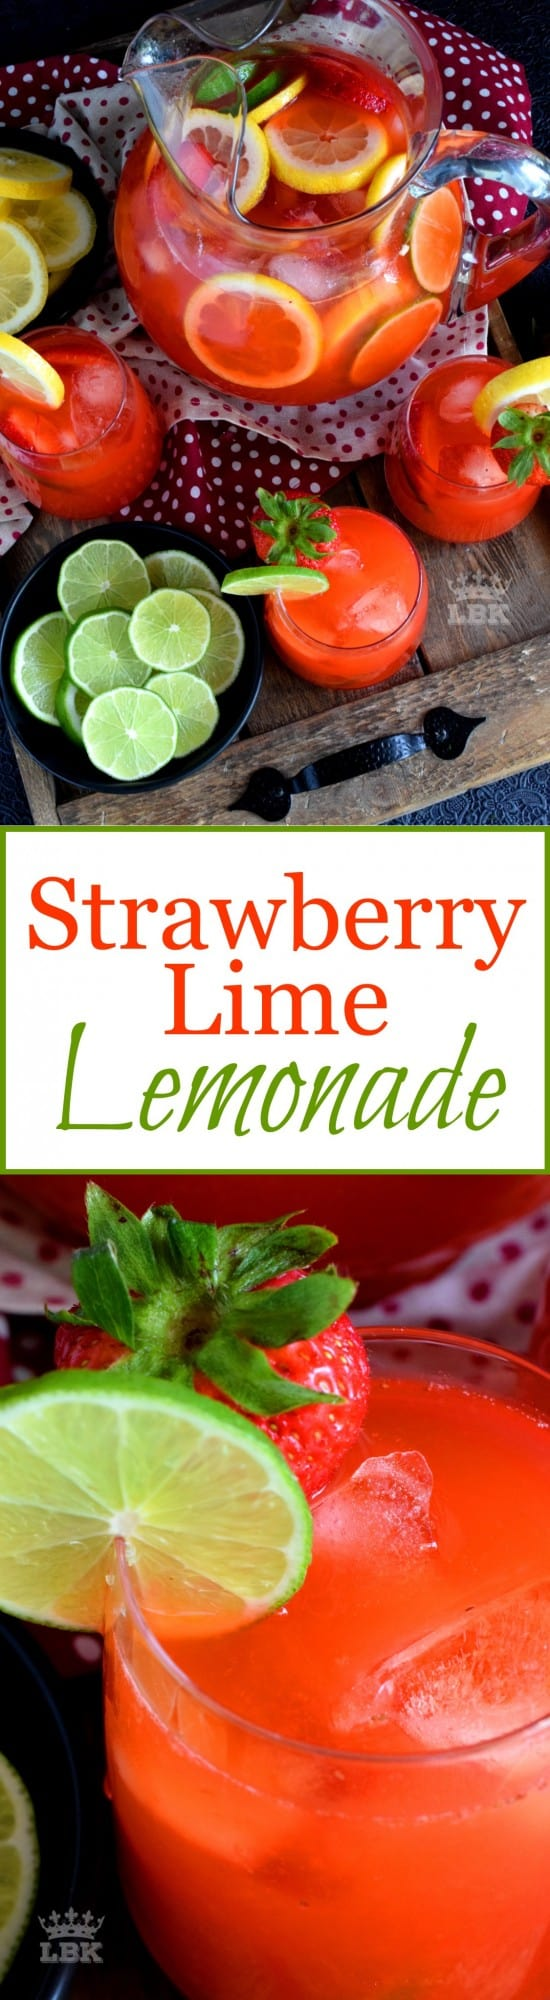 Strawberry Lime Lemonade